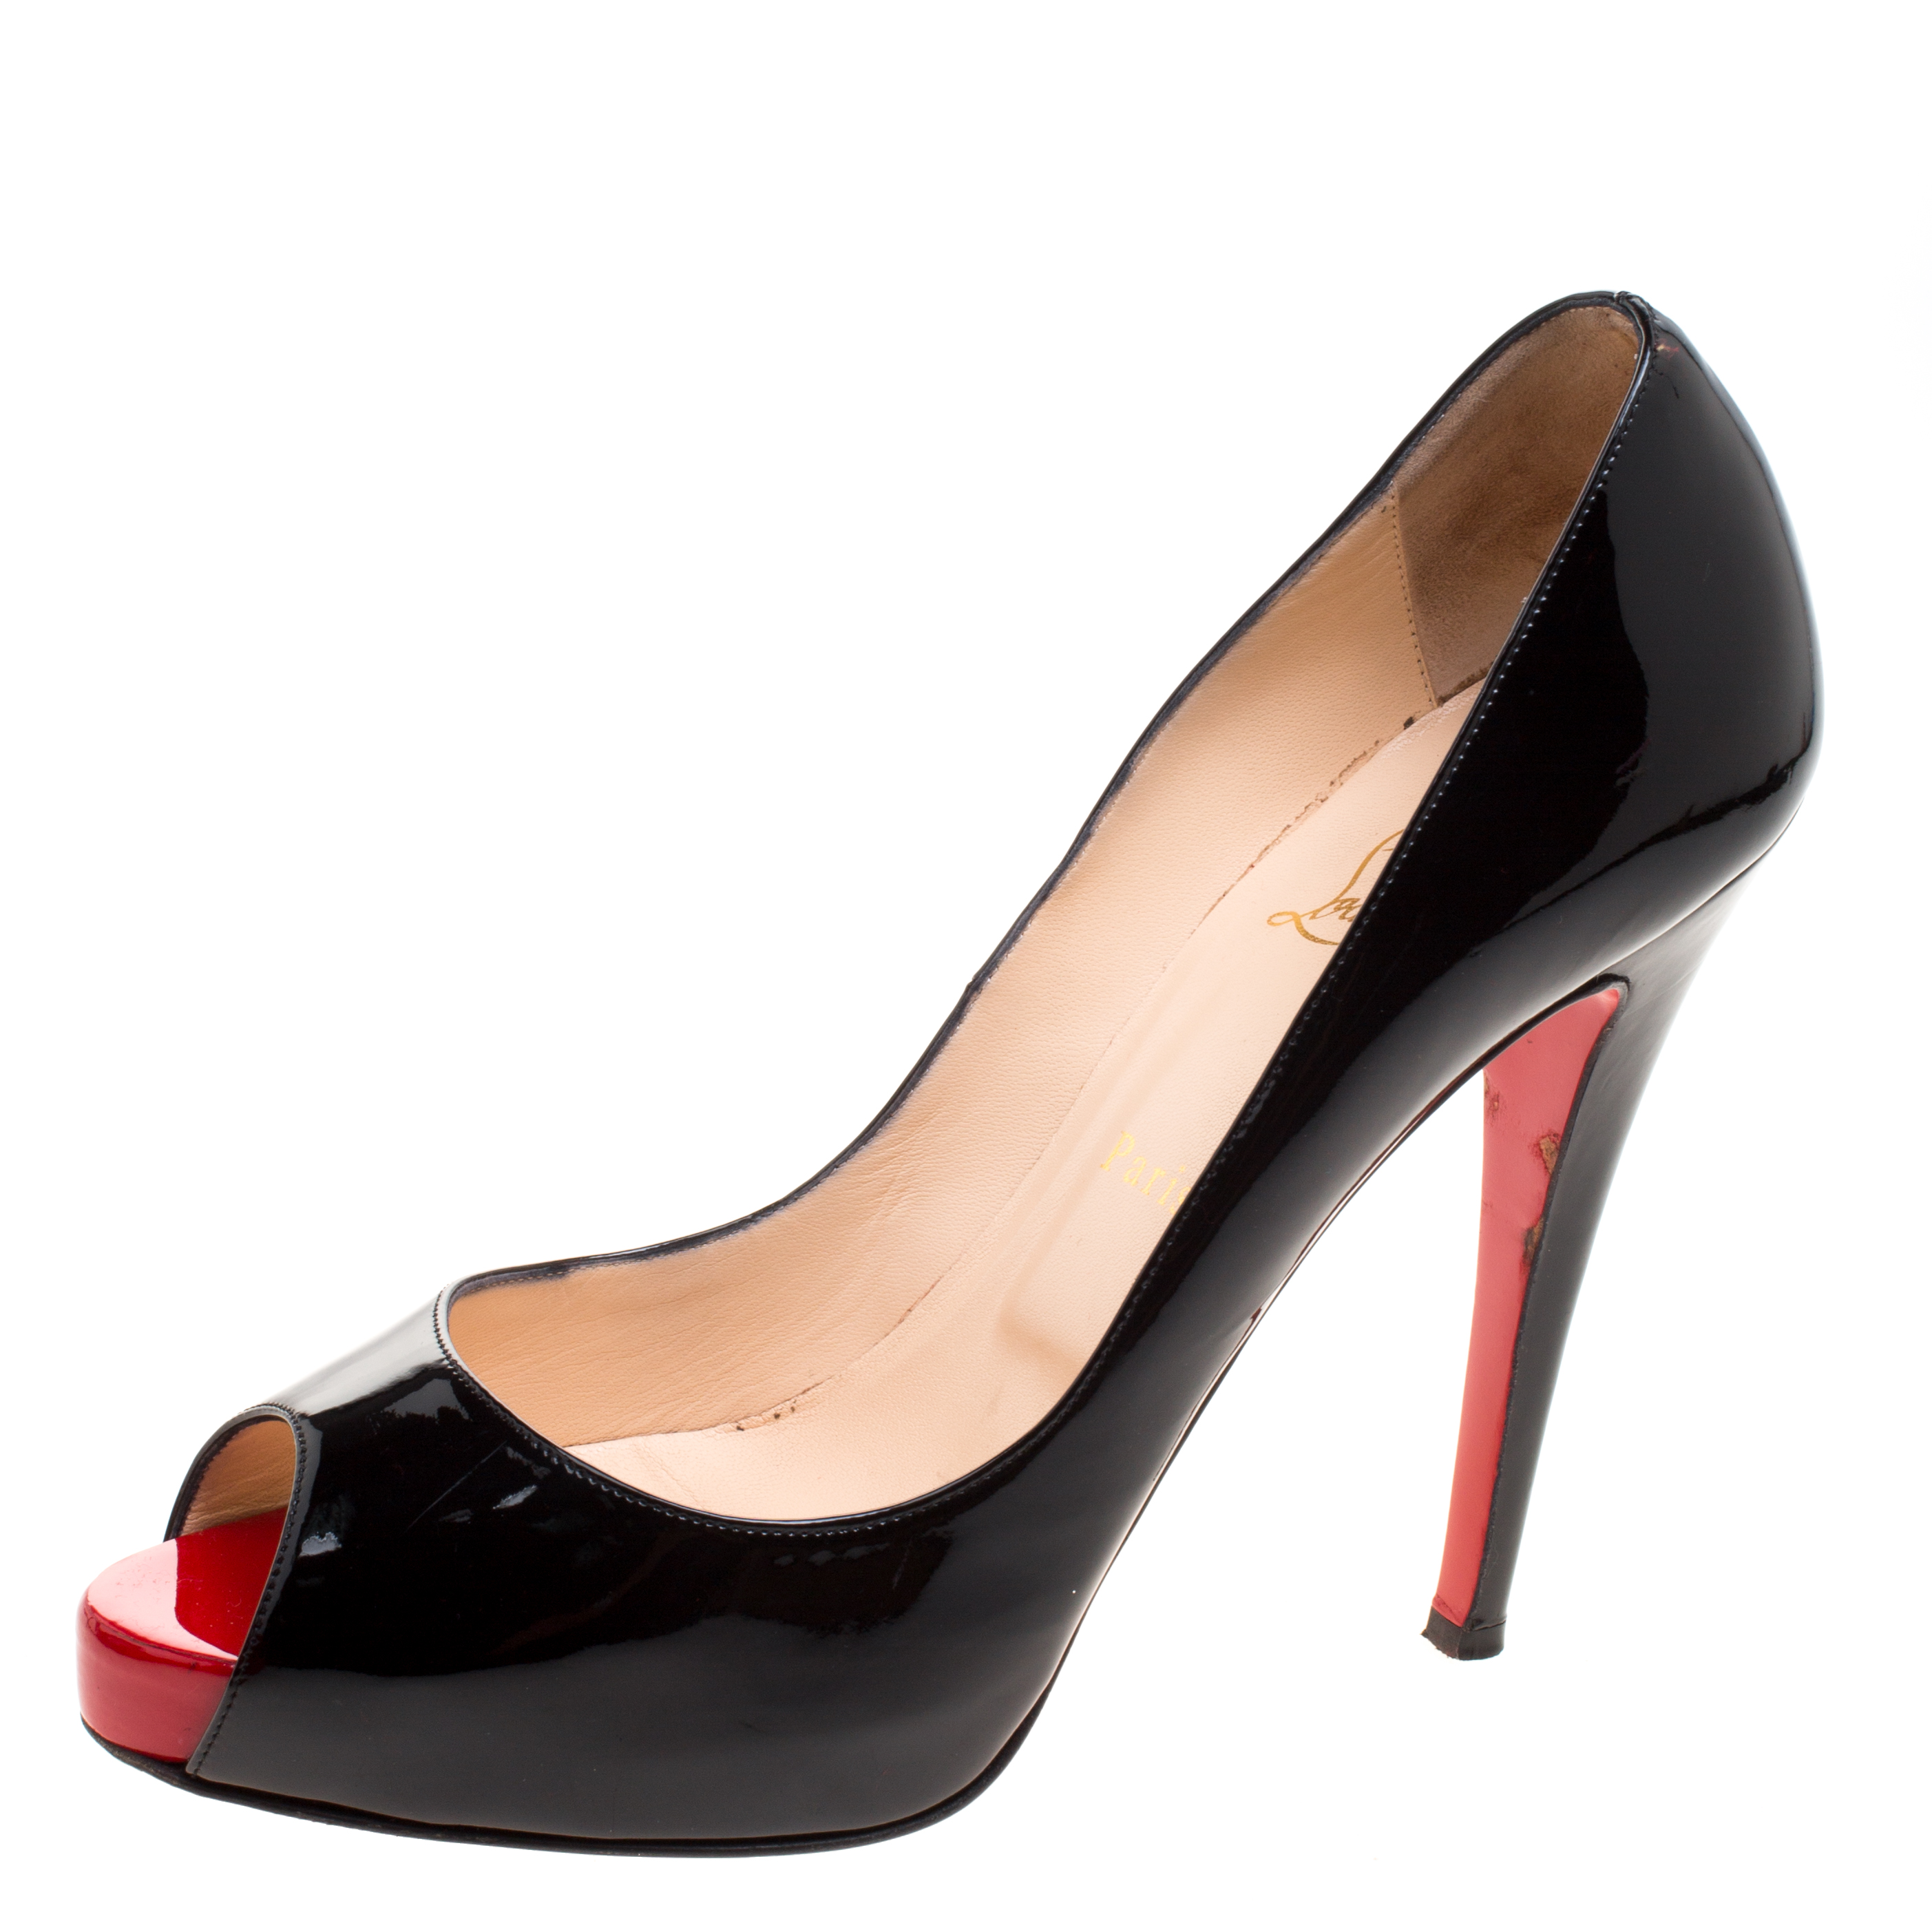 f11ef1d39c ... Christian Louboutin Black Patent Leather Very Prive Peep Toe Pumps Size  41.5. nextprev. prevnext